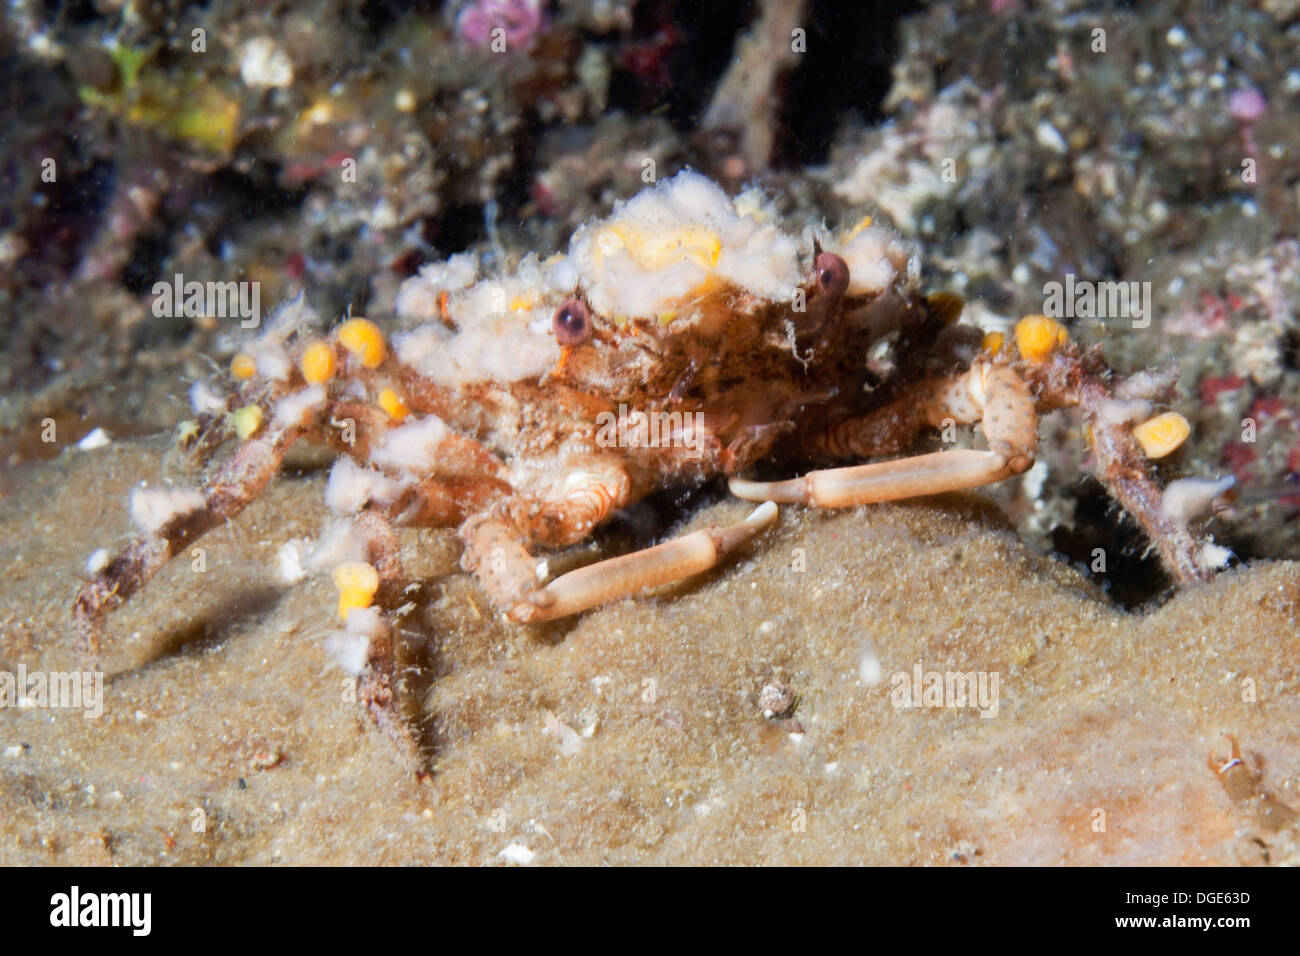 Round Crab covered with diverse organisms and detritus as camouflage.(Lybia sp.).Lembeh Straits, Indonesia - Stock Image